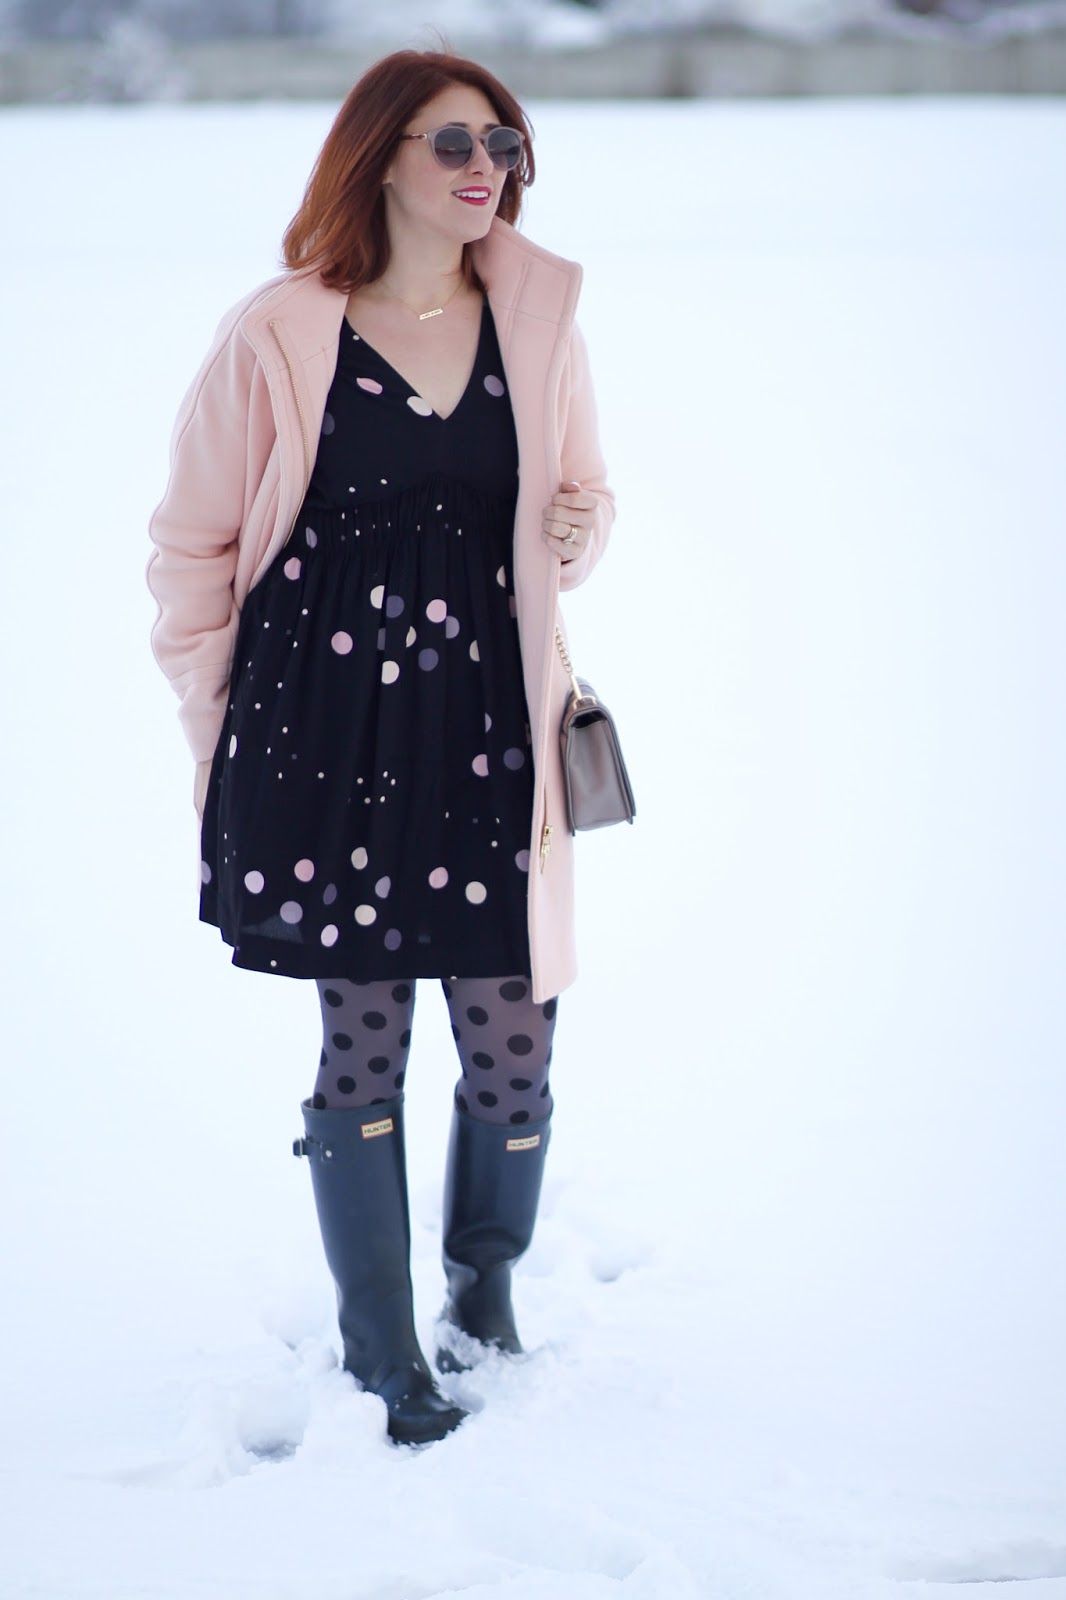 anthropologie felicity dress, polka dot tights, cocoon coat in pale ginger, red hair and navy hunter boots make a casual and cute affordable outfit for work or teacher